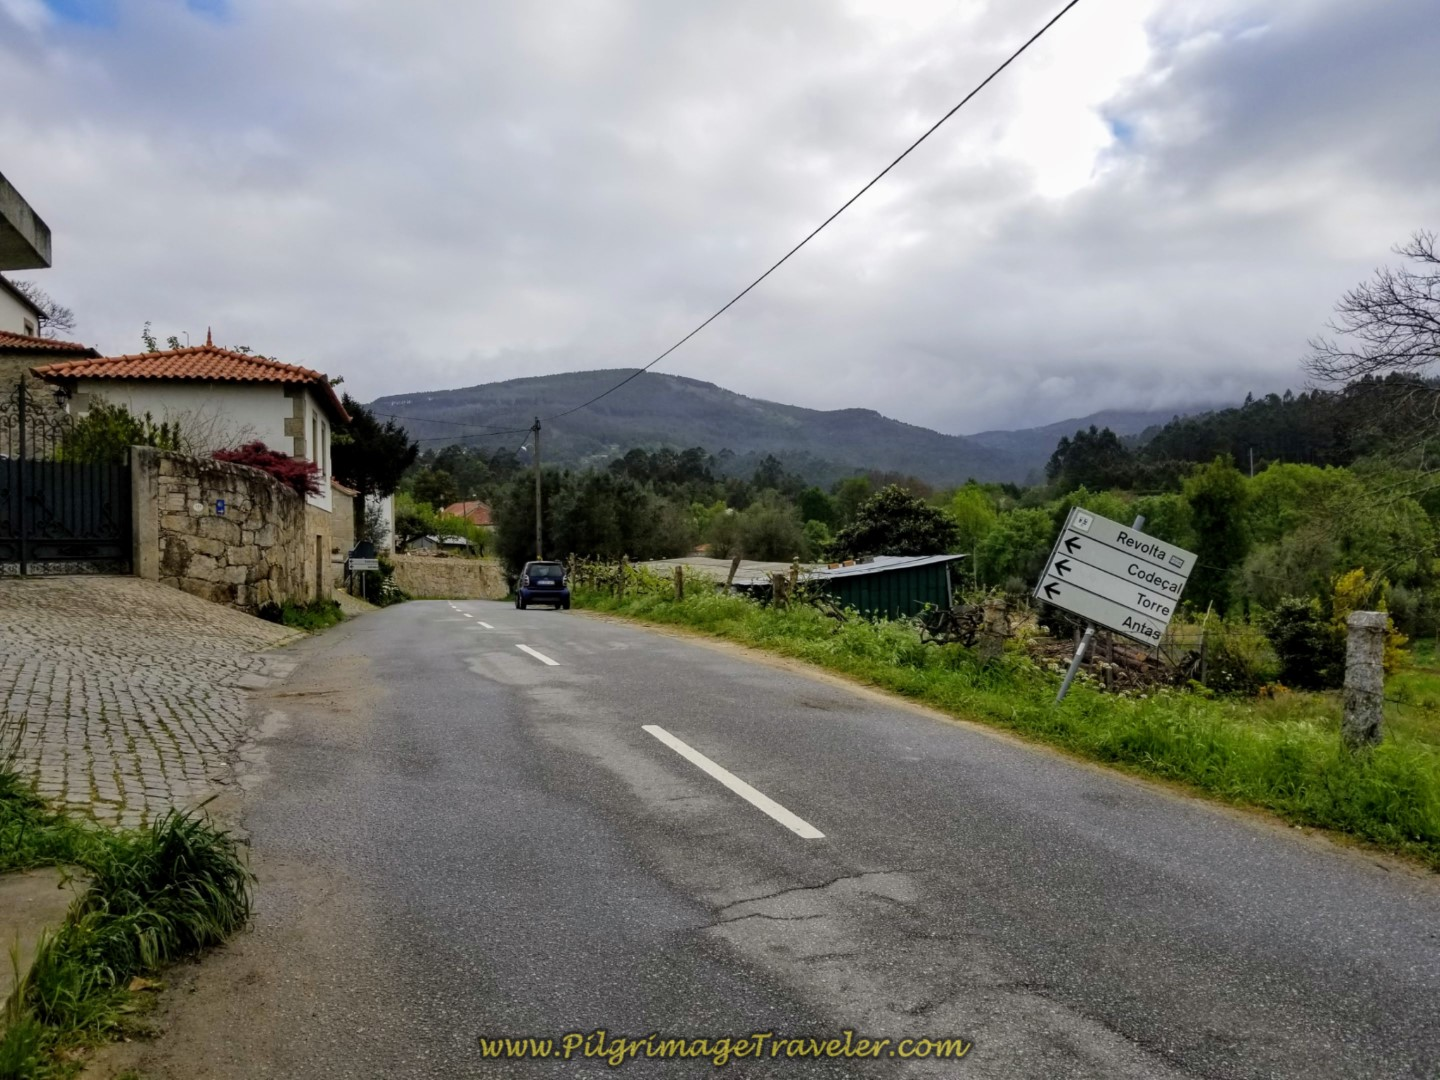 Entering the Next Town of Revolta on day eighteen on the Central Route of the Portuguese Camino